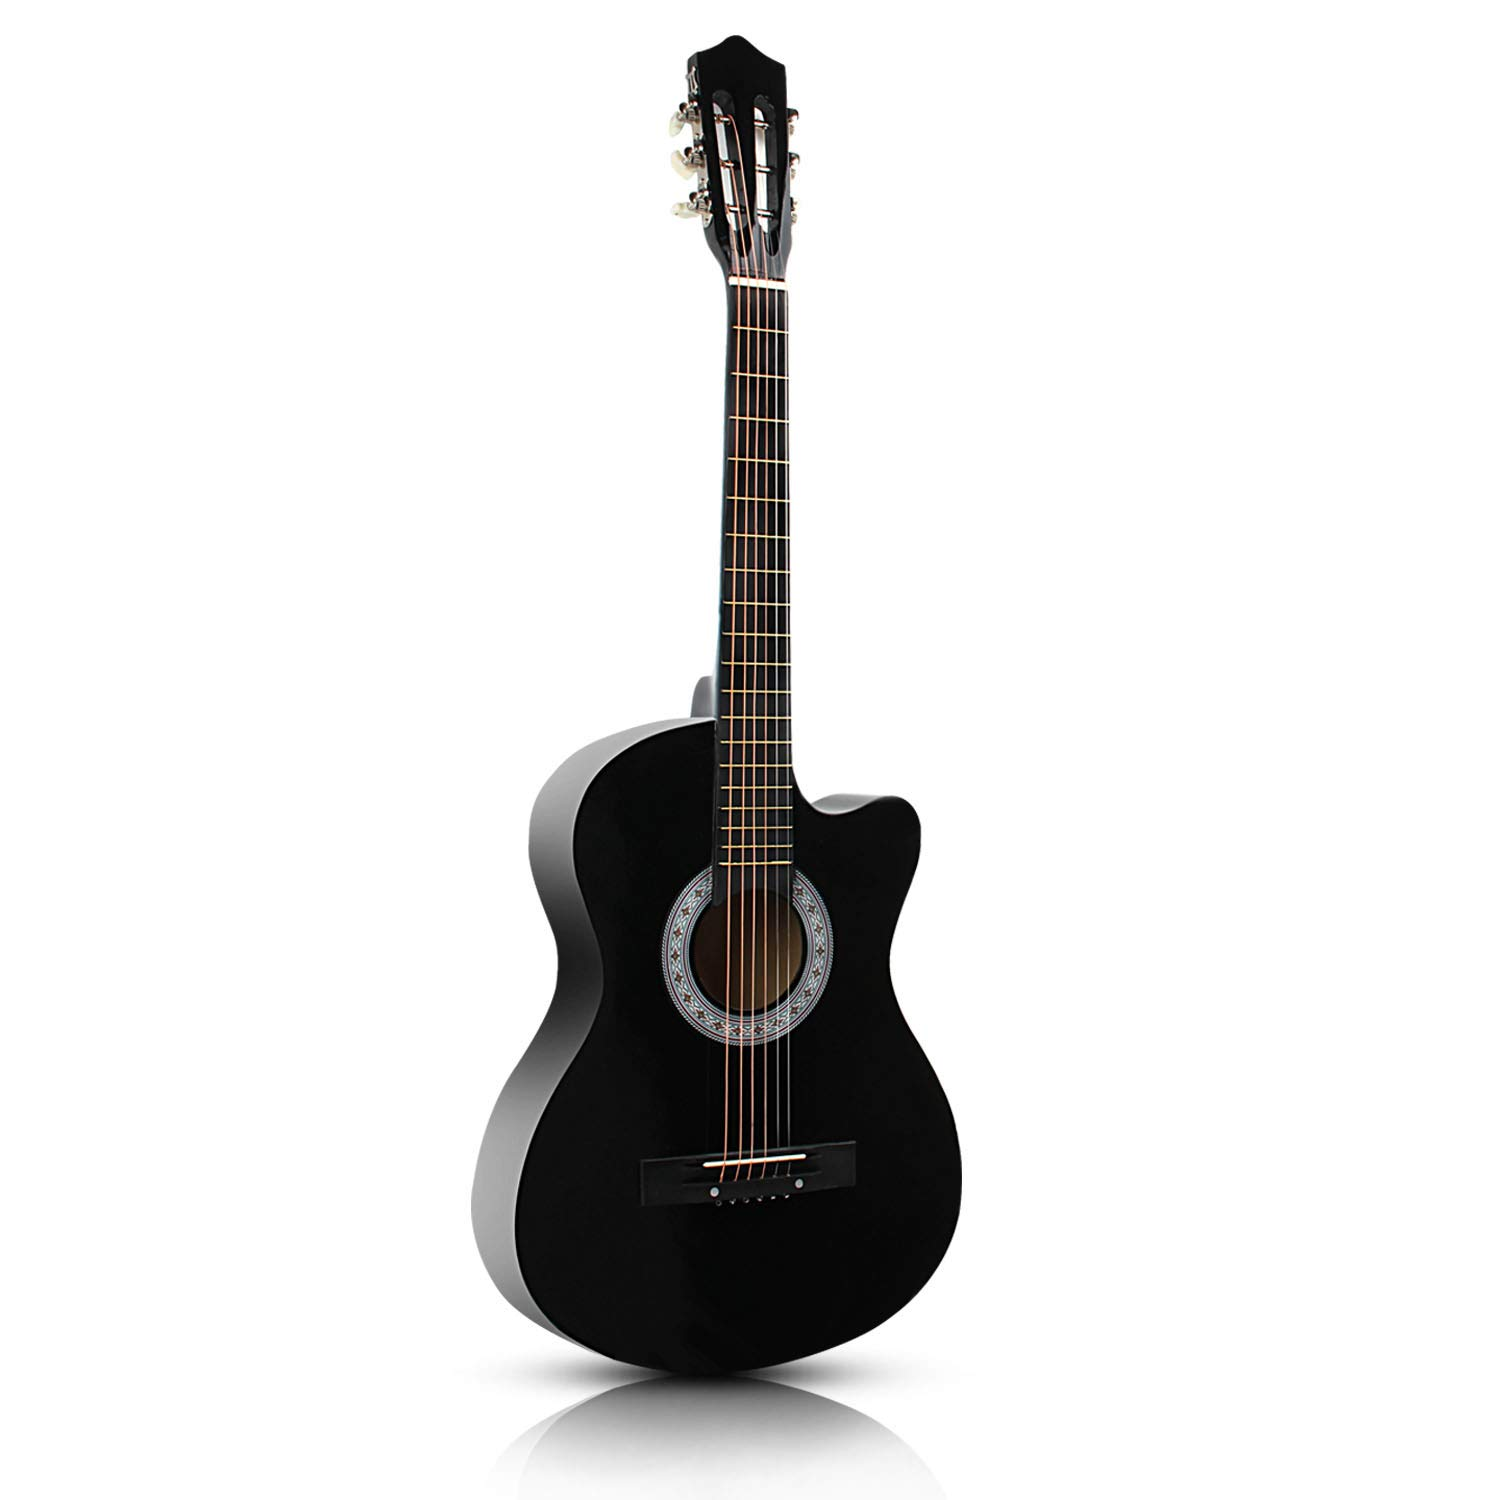 ARyee 38 Acoustic Cutaway Guitar Beginner Kit with Gig bag, Strap, Tuner and Pick (Black)